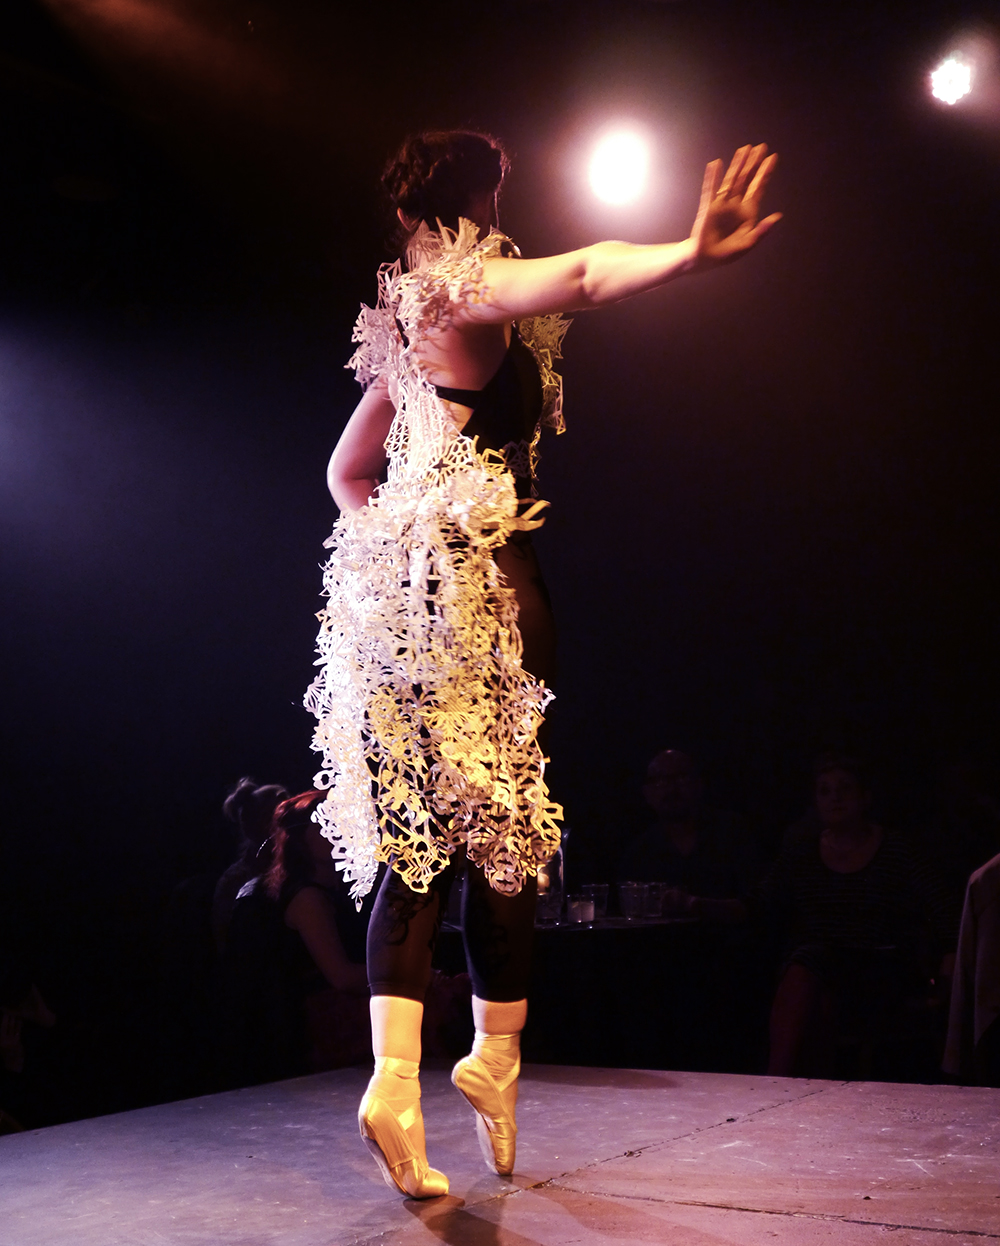 Dundee Wearable Art, Dundee Wearable Art Show, Wearable art, performance, fashion and art, Scottish Bloggers,  Rachel Goodwin - Ice Crystal, paper cut, paper cut dress, ballet